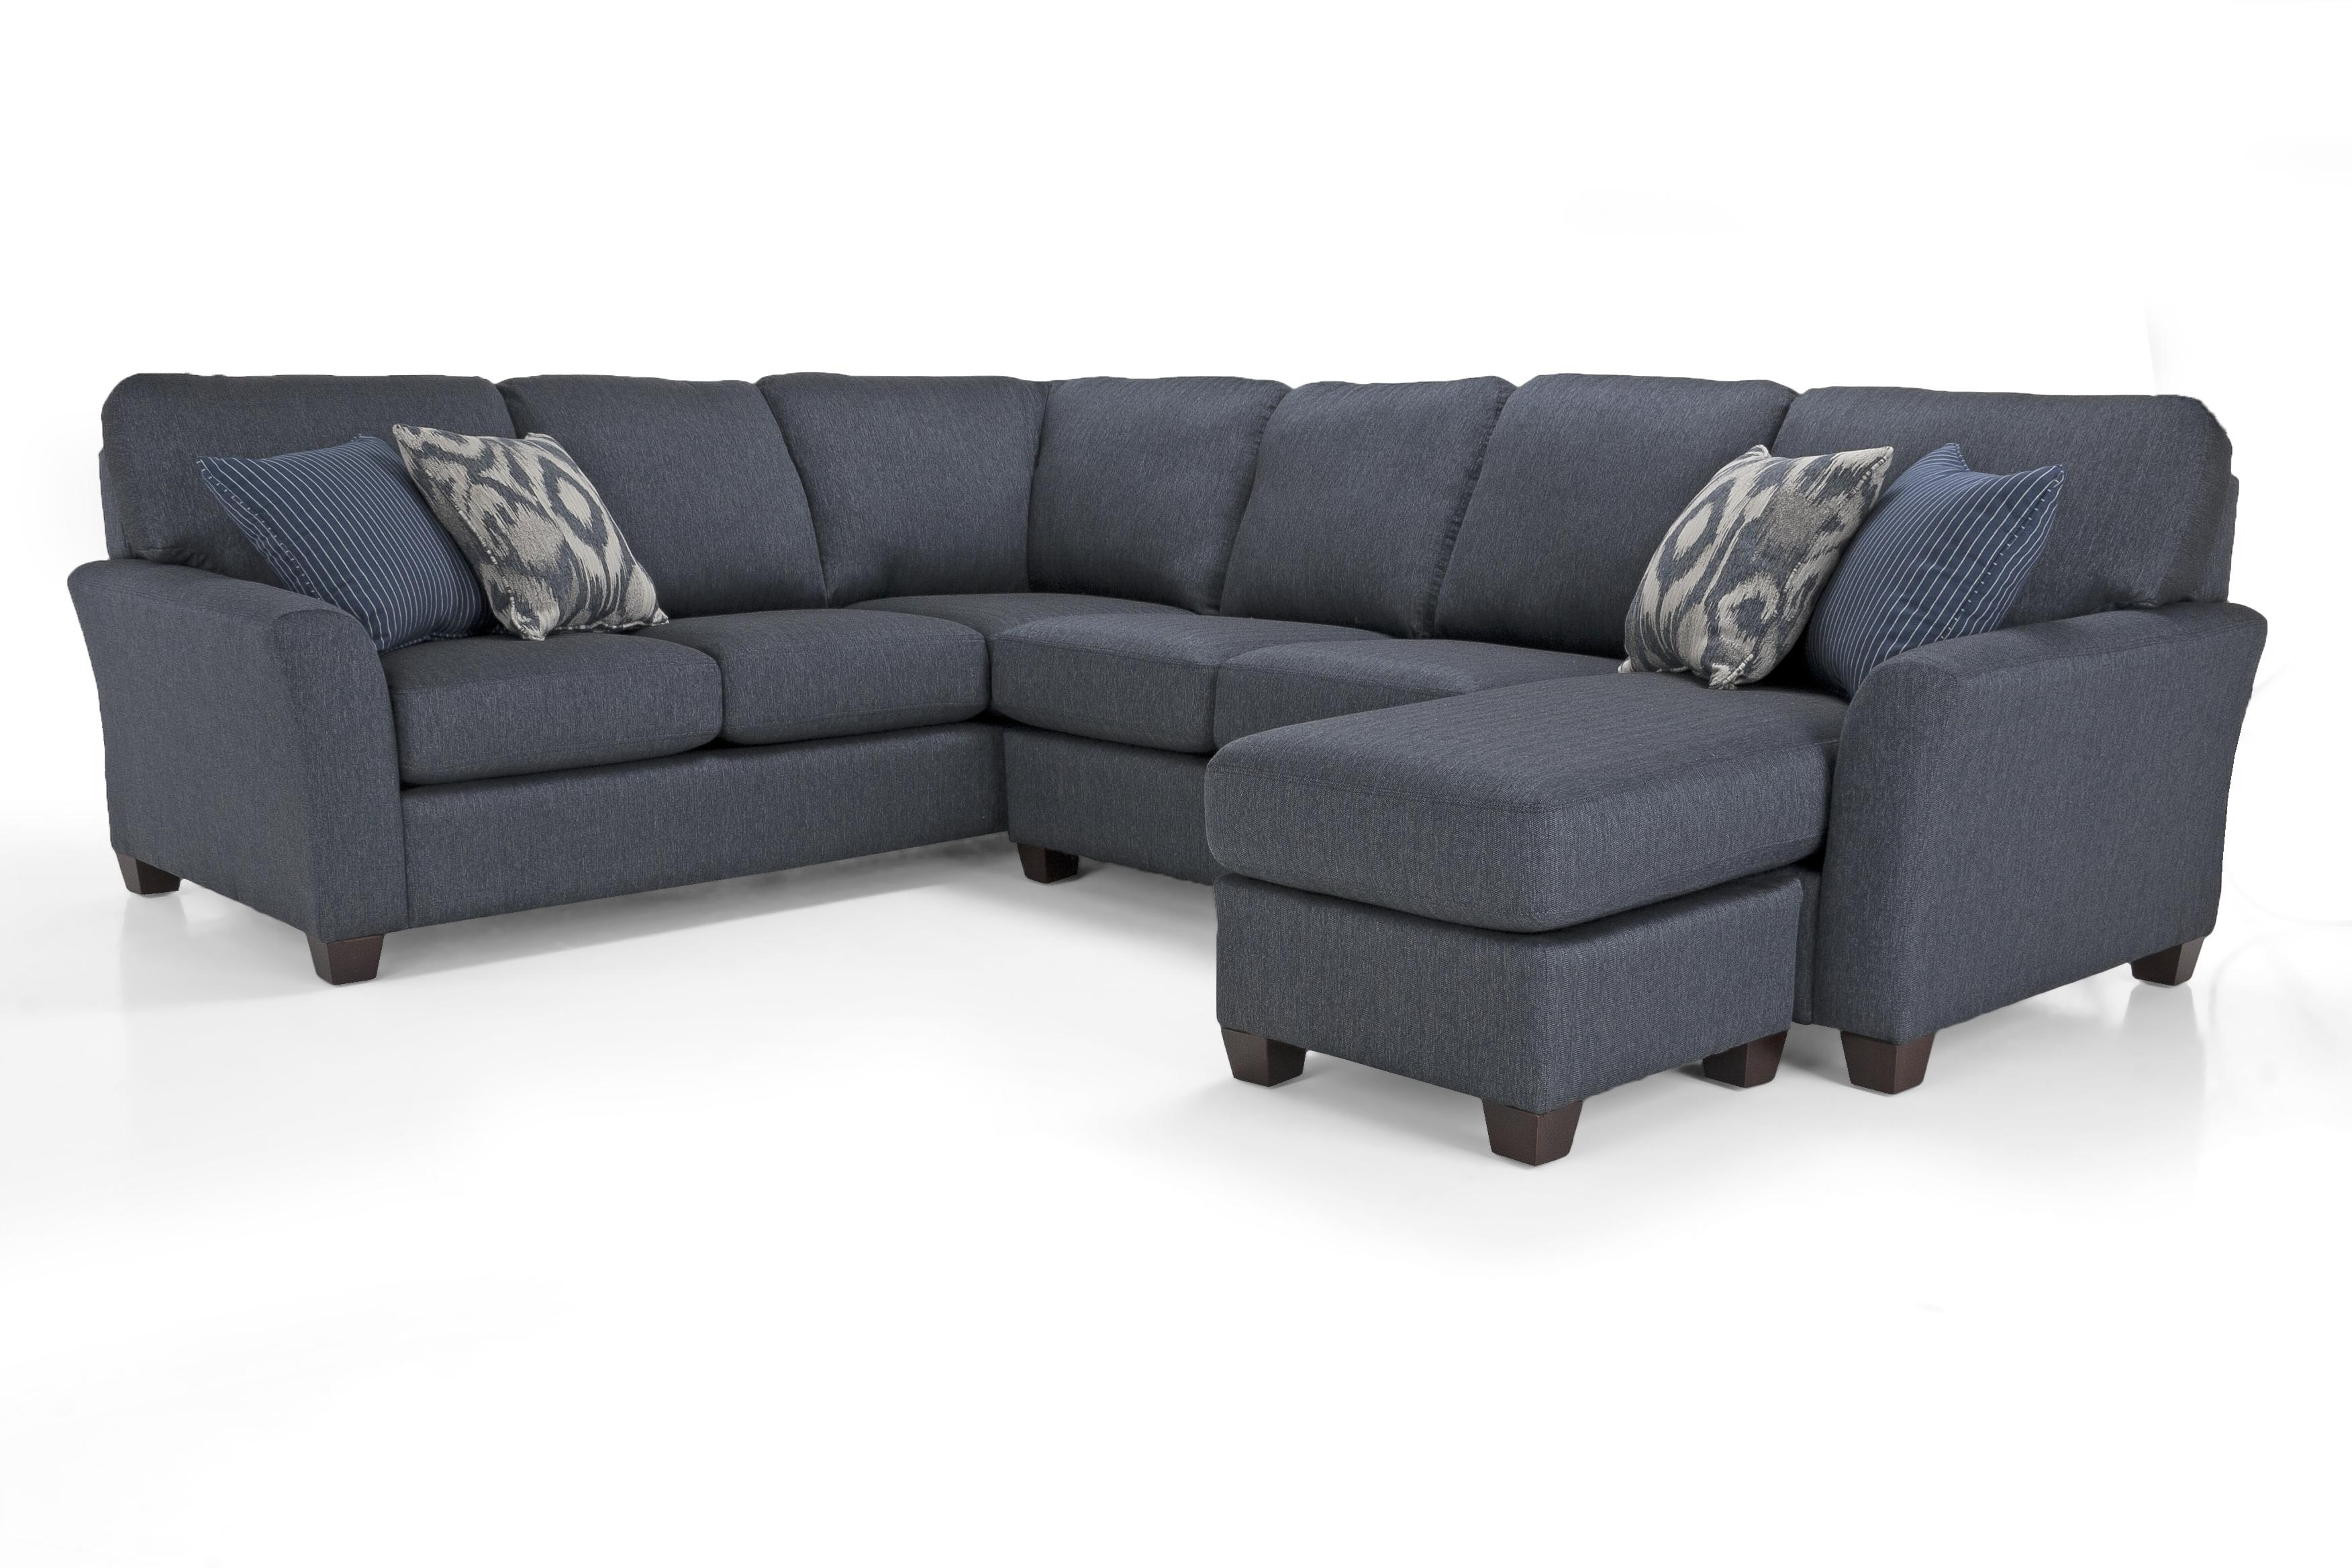 Alessandra Connections LHF Chaise Sectional by Decor-Rest at Stoney Creek Furniture